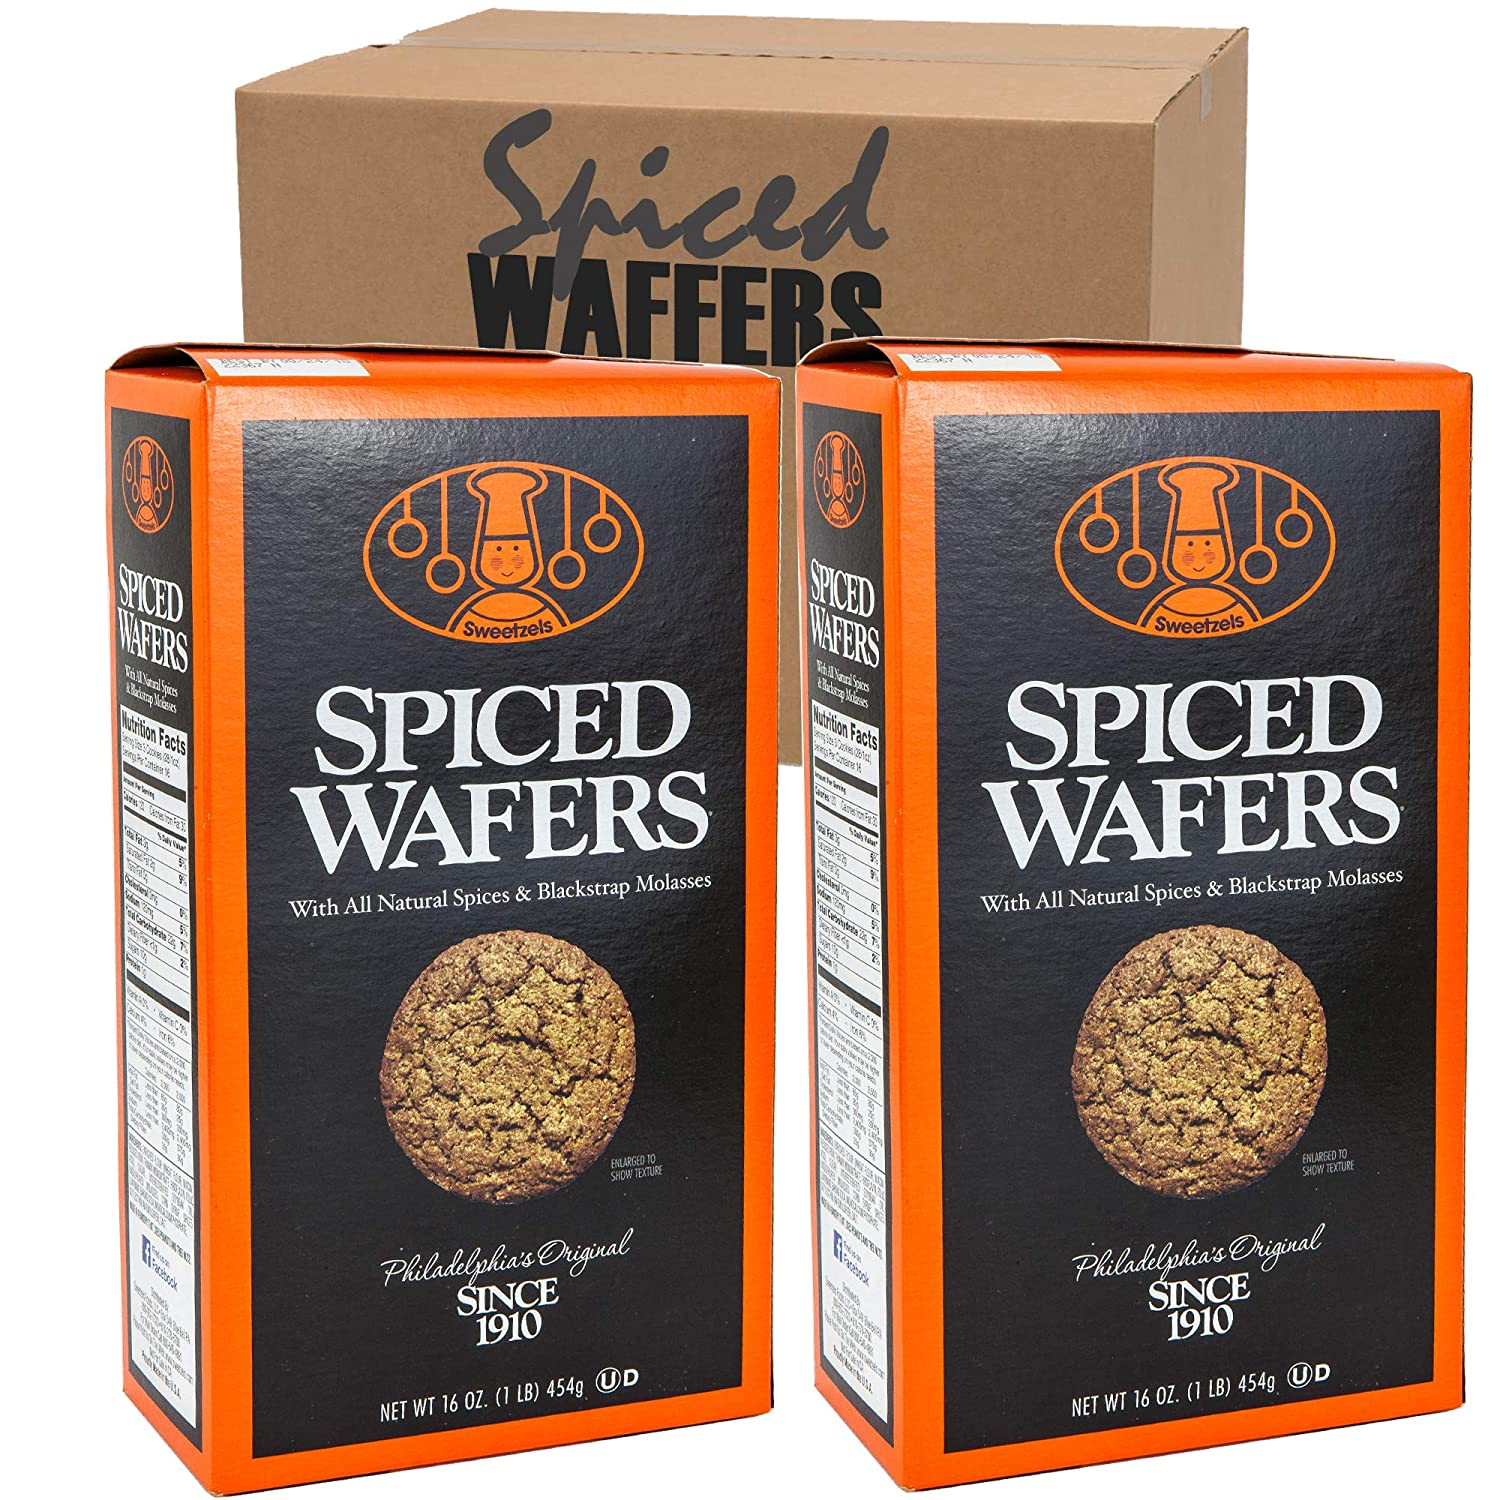 Spiced Wafers | Philadelphia Original Famous Ginger Snaps - Sweetzels | With All Natural Spices & Blackstrap Molasses | Pack of 2 Boxes 16 Oz Each (Spiced Wafers)